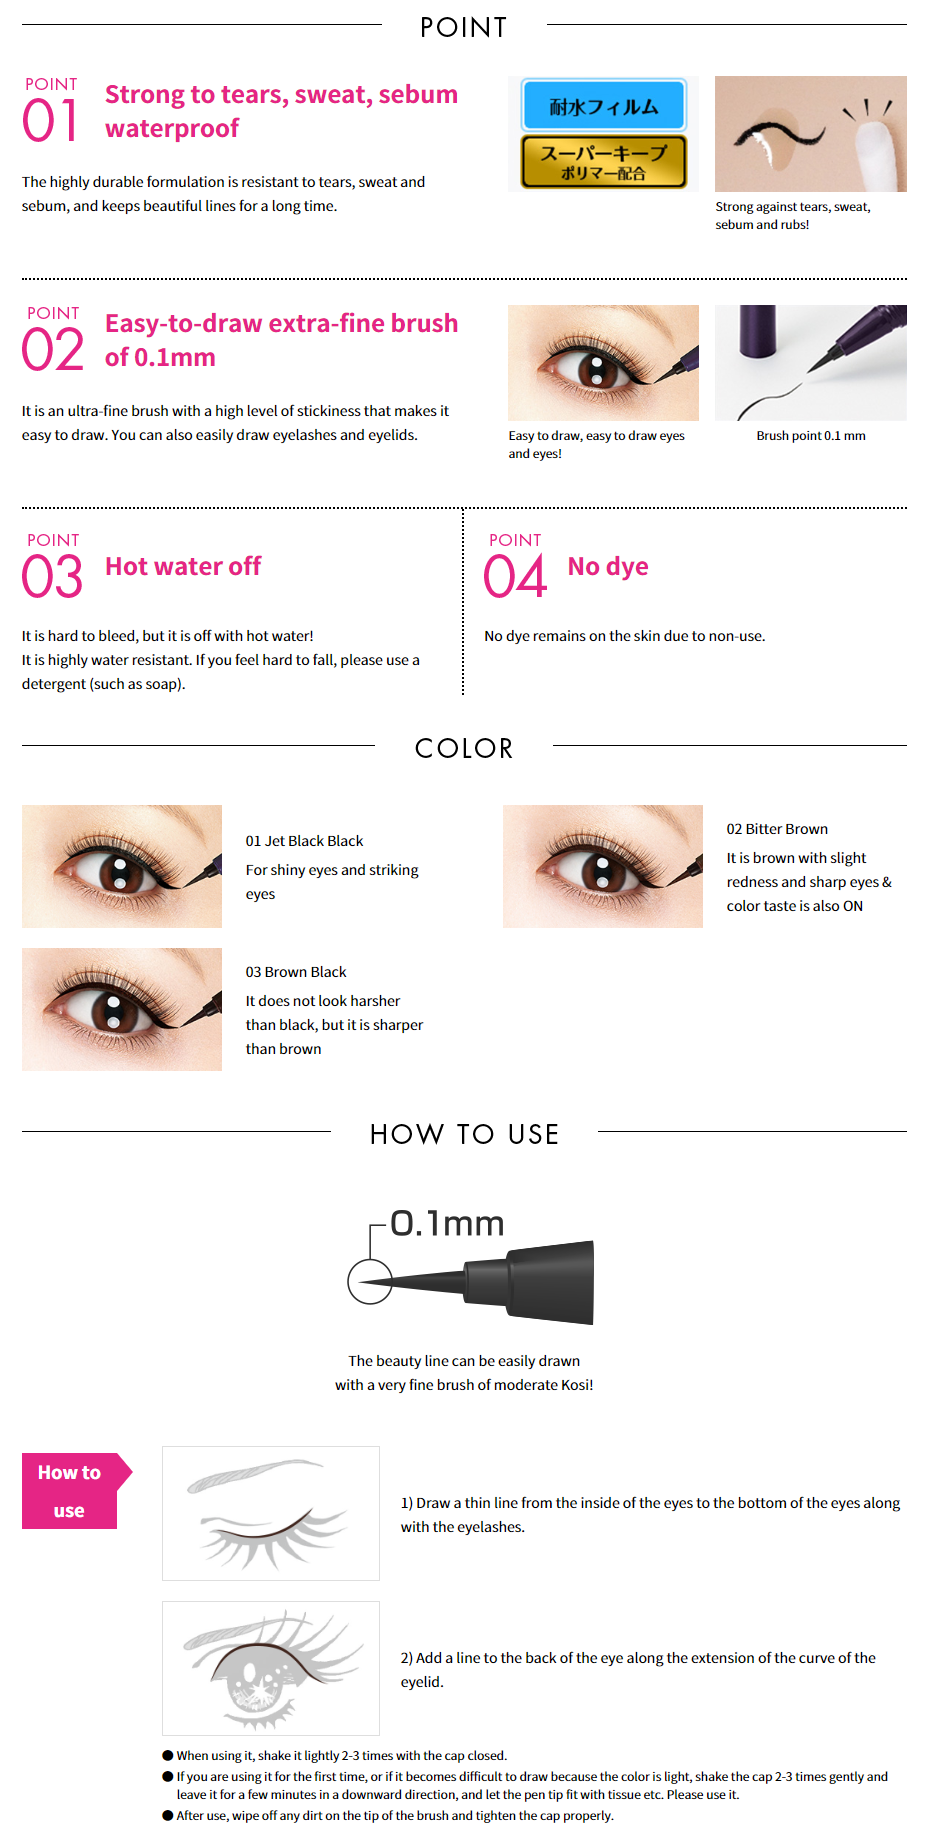 Kissme Smooth Liquid Eyeliner Super Keep #01 JET BLACK